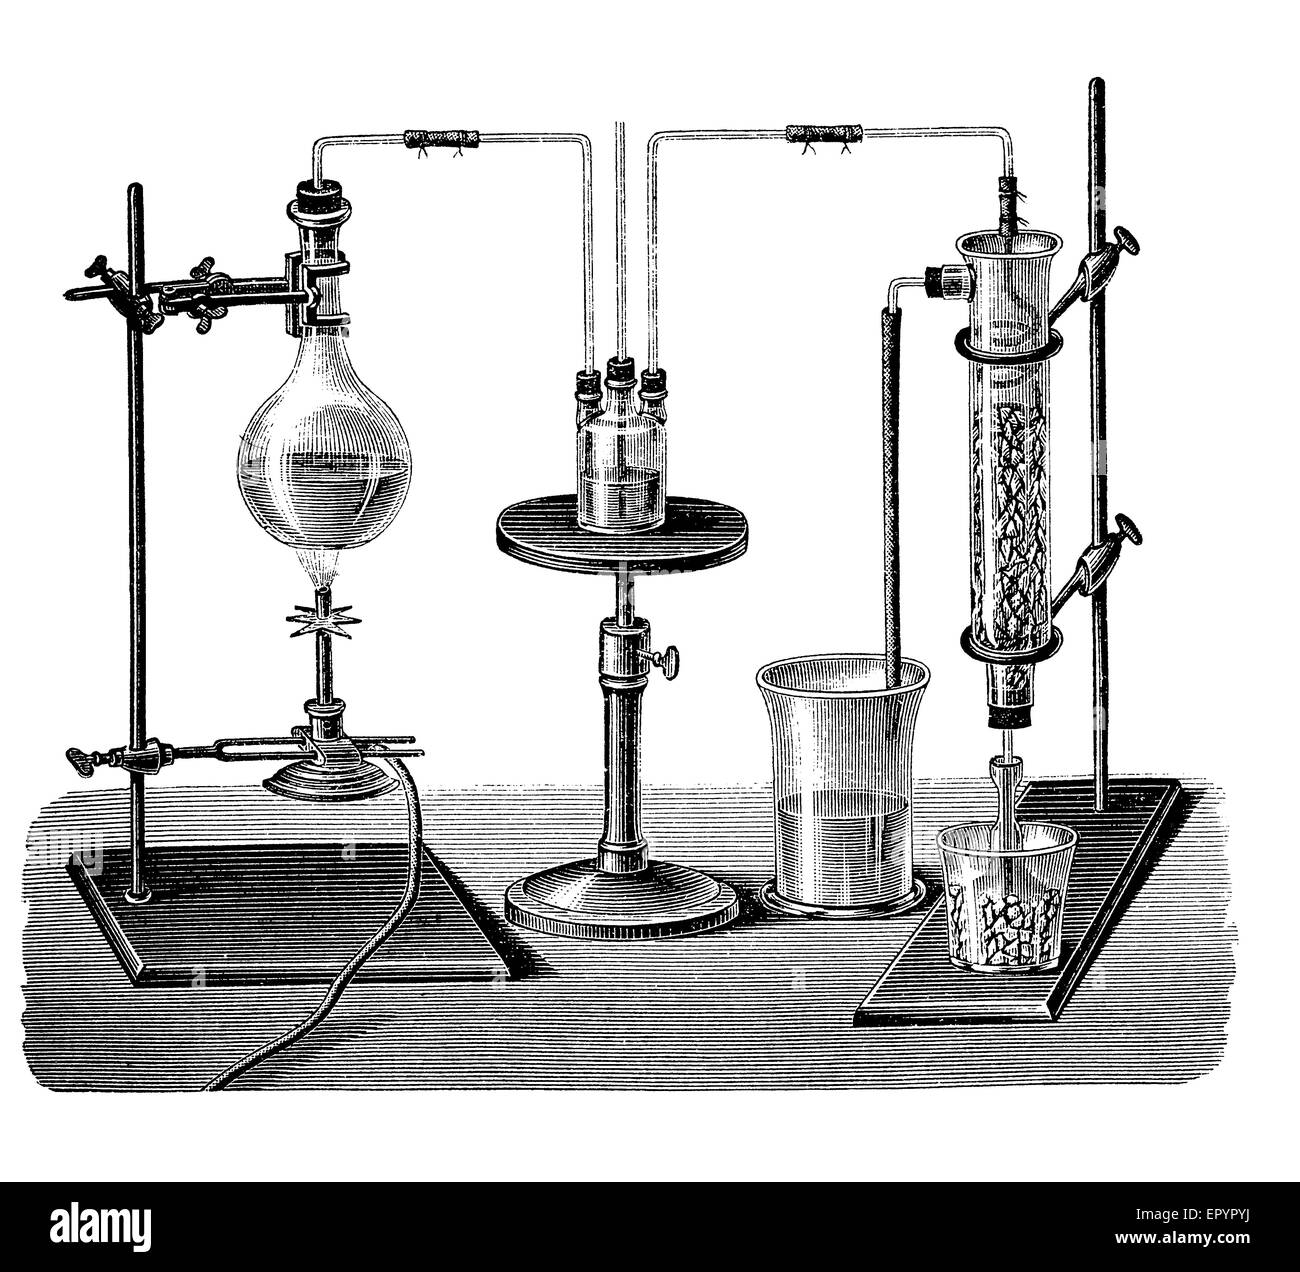 Vintage Chemistry Lab Equipment For Sulfur Dioxide Production. The ...